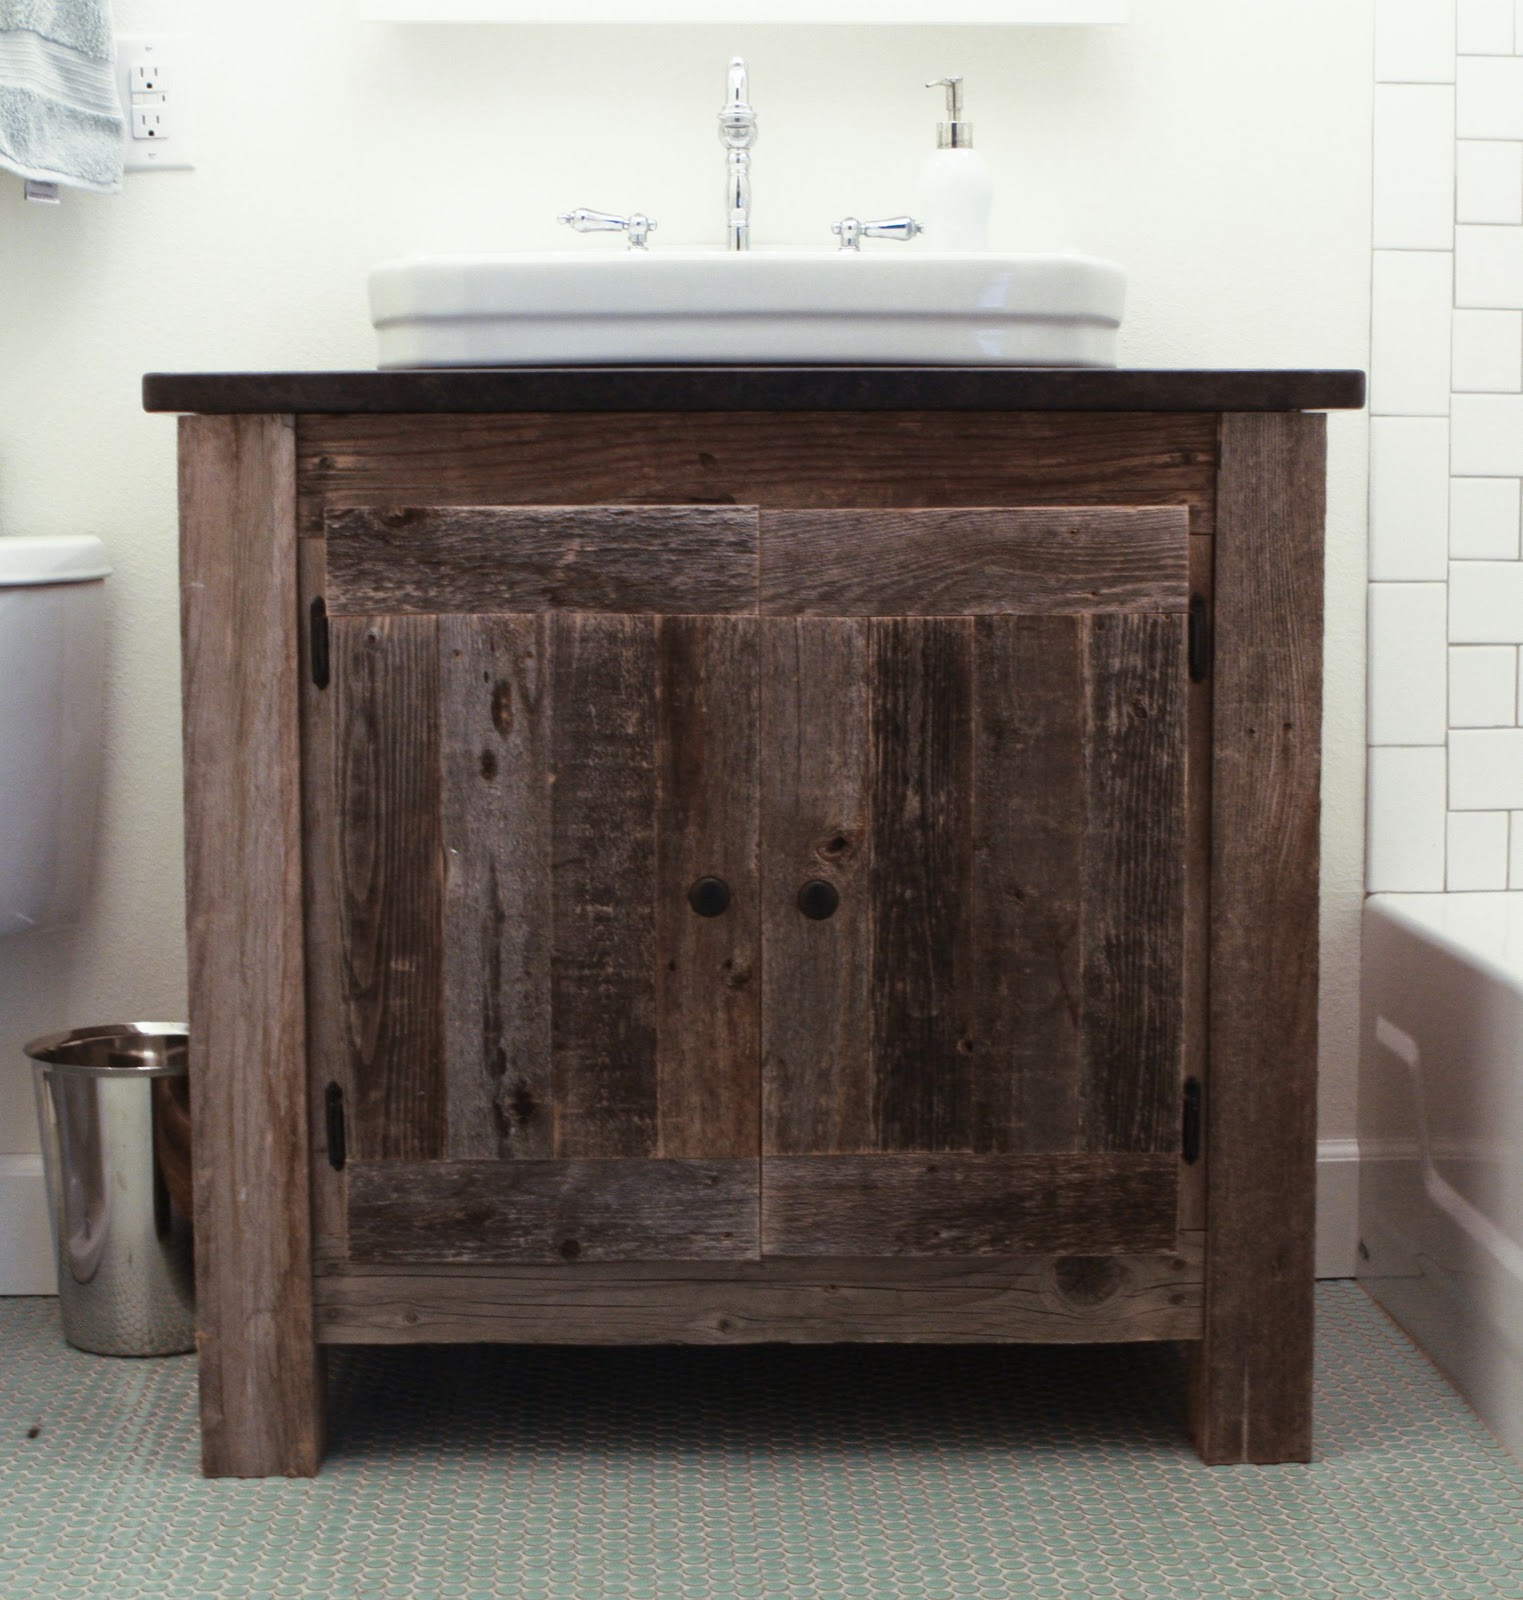 the reclaimed wood vanity